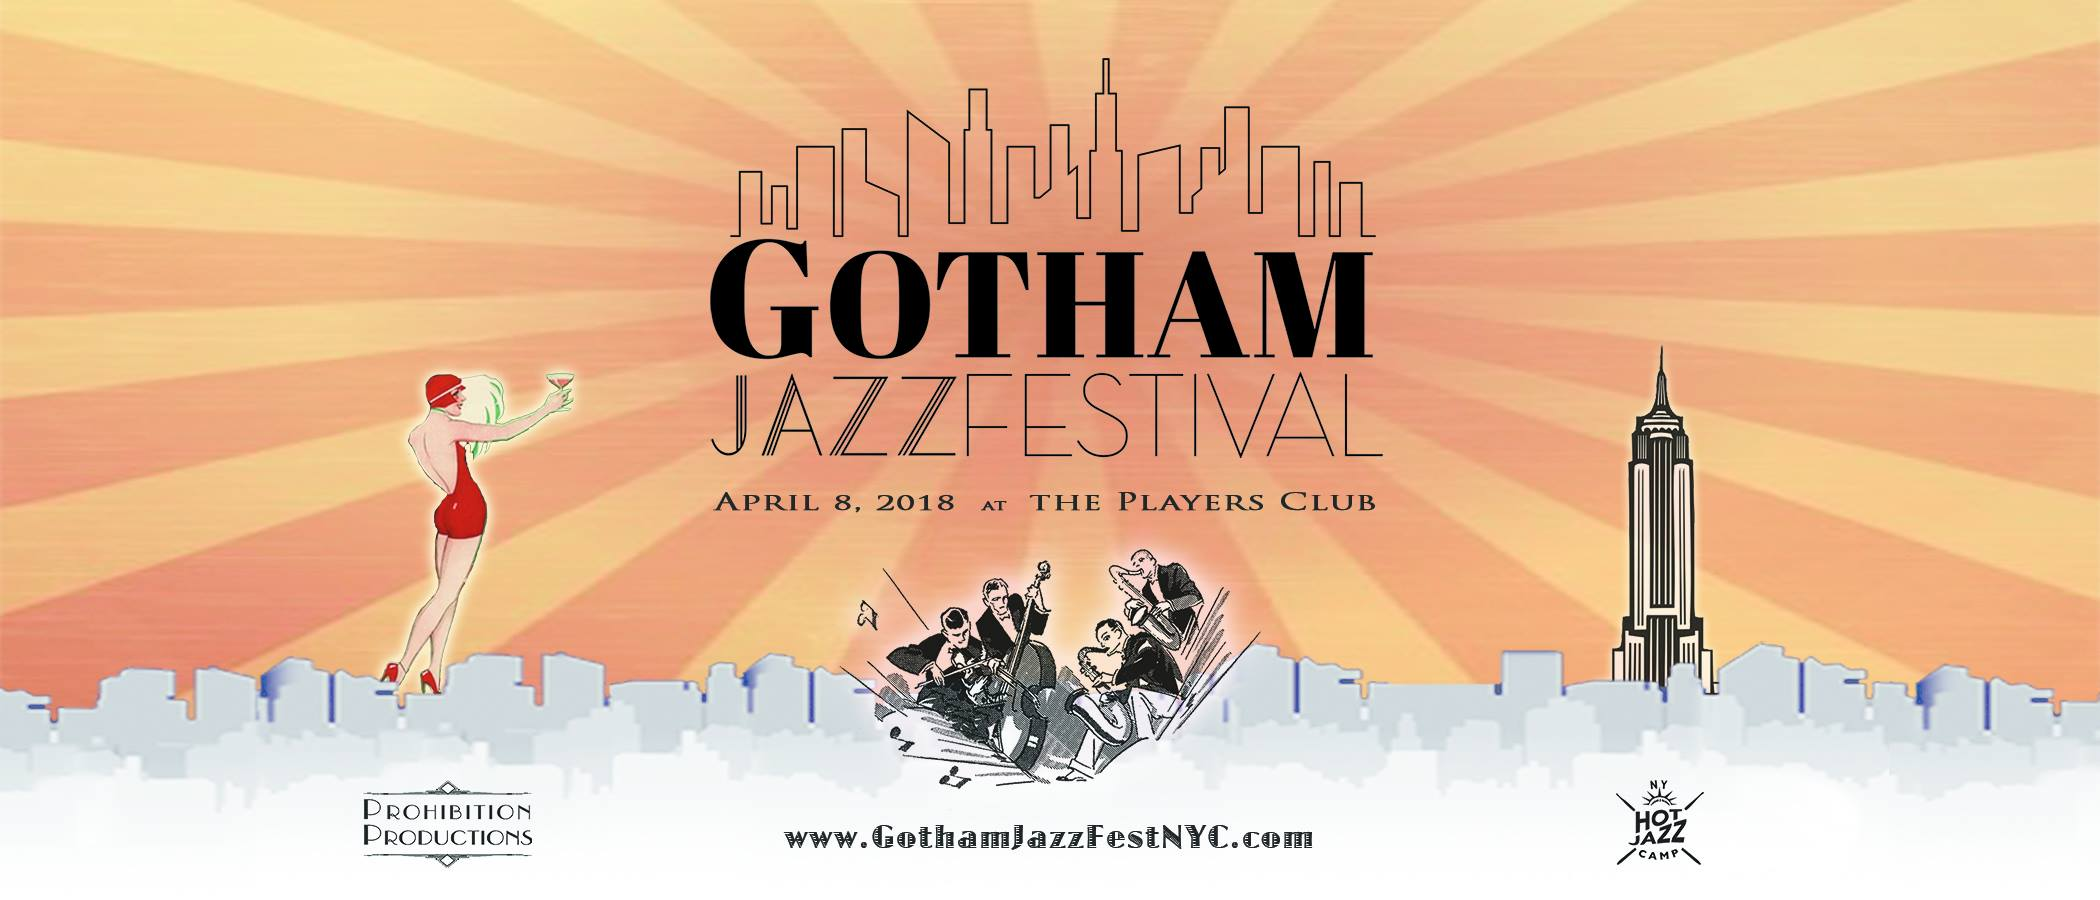 GOTHAM JAZZ FESTIVAL APRIL 8th feat. Catherine Russell, Stephane Wrembel, Kat Edmonson, Evan Christopher, Bria Skonberg, Nicki Parrott and more